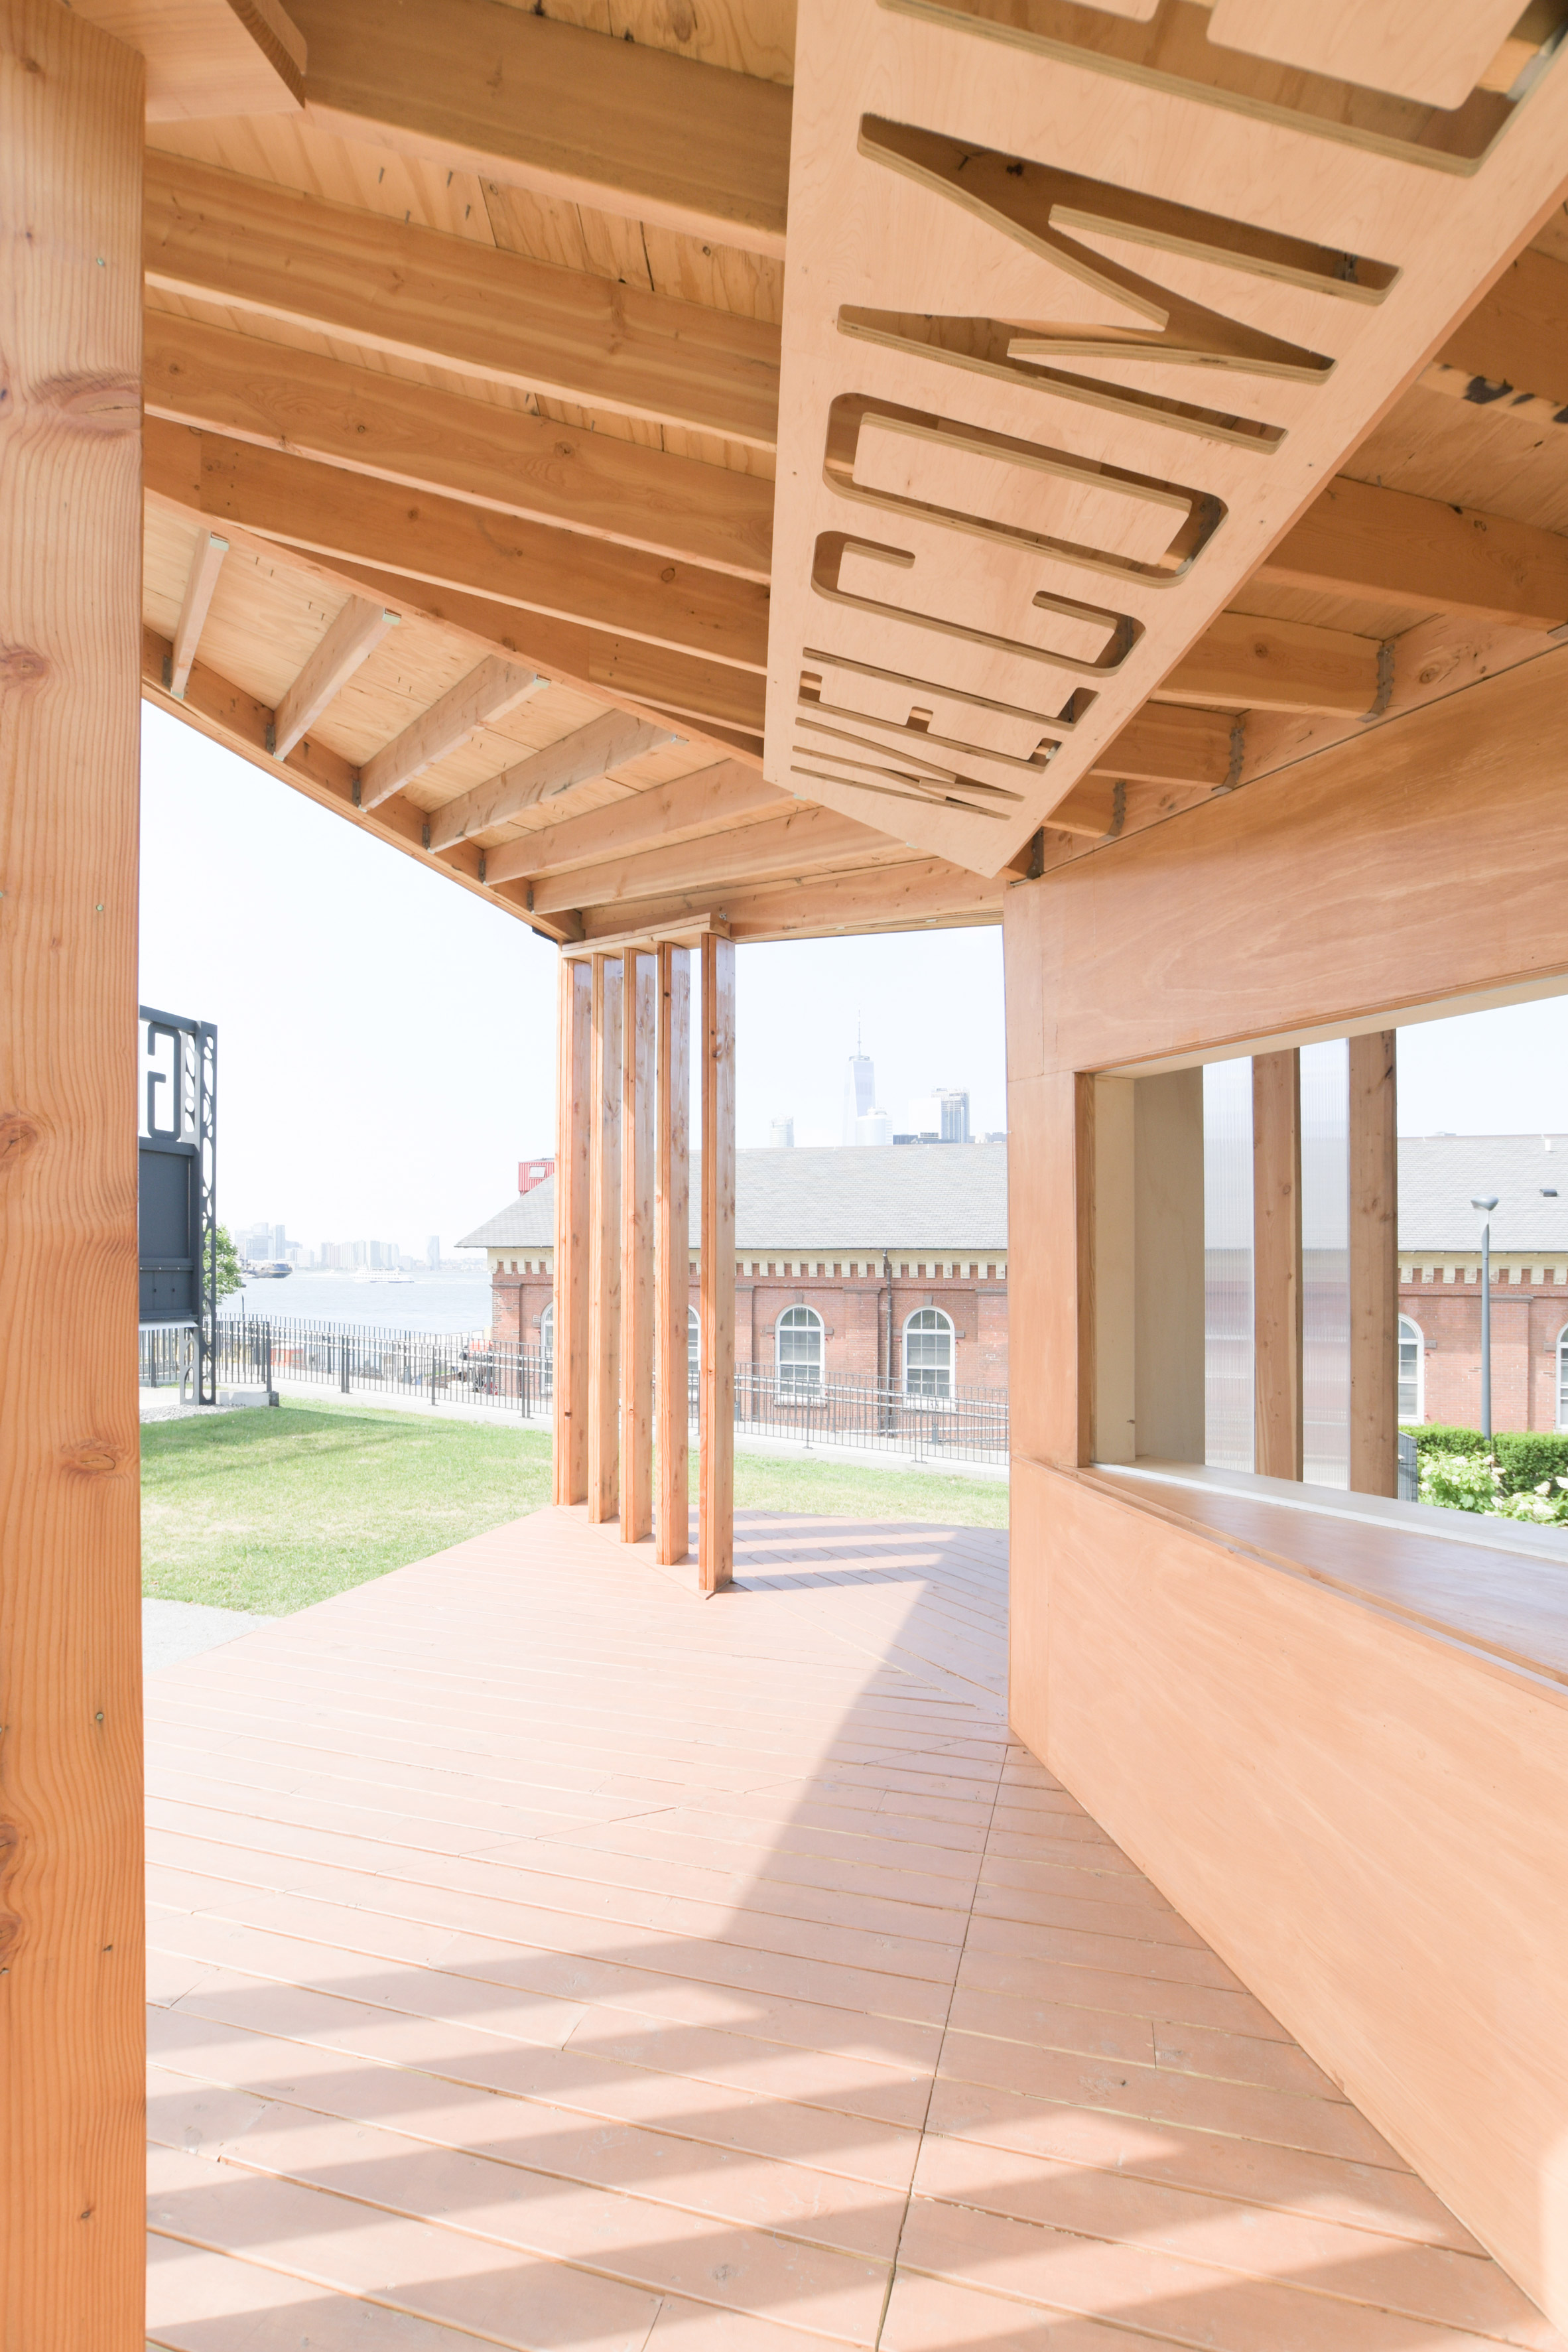 Governors Island Welcome Center by Office III